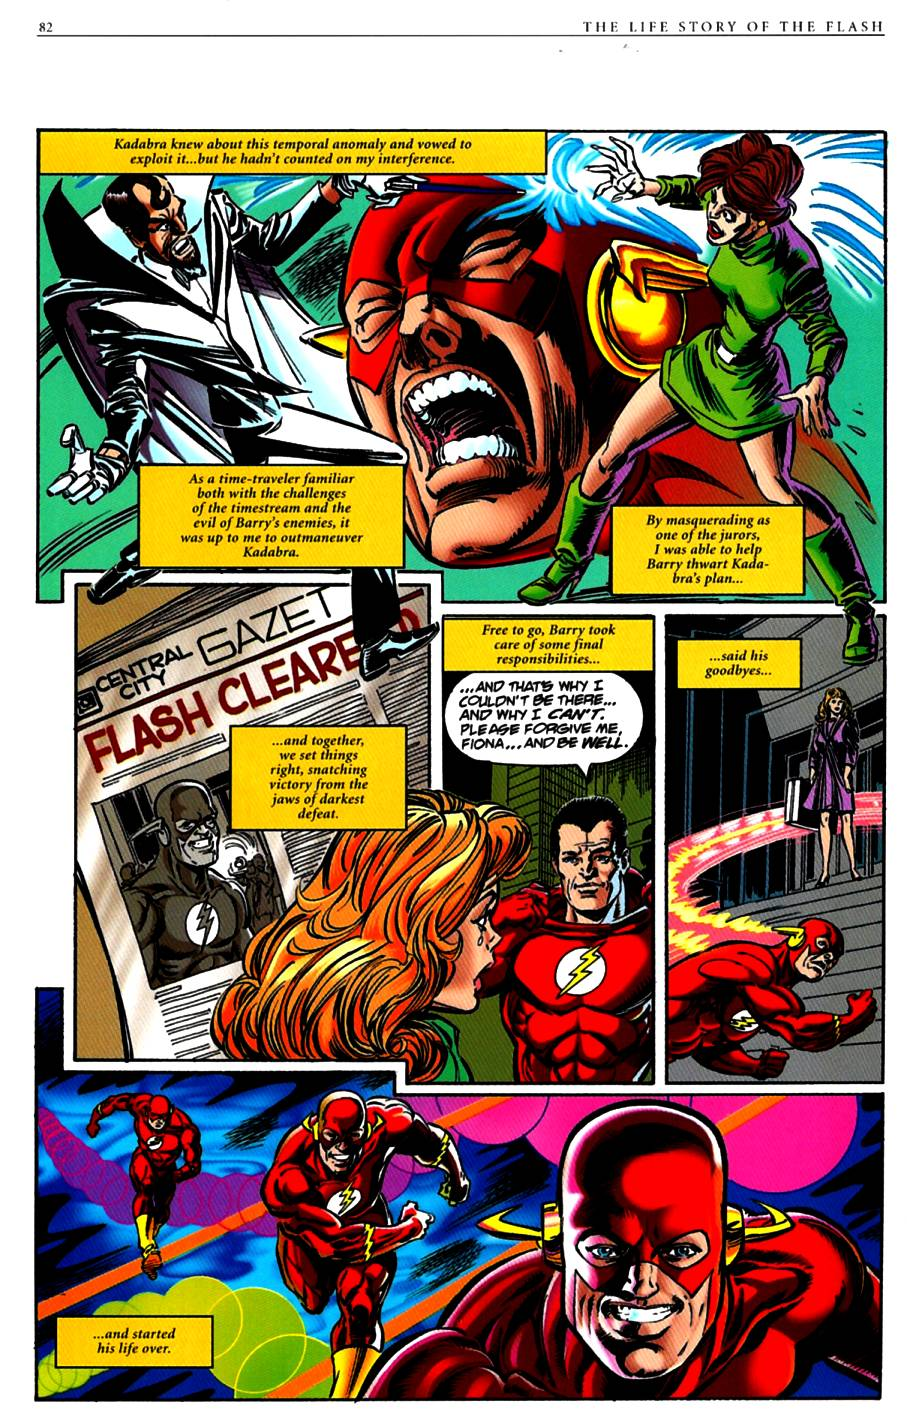 Read online The Life Story of the Flash comic -  Issue # Full - 84